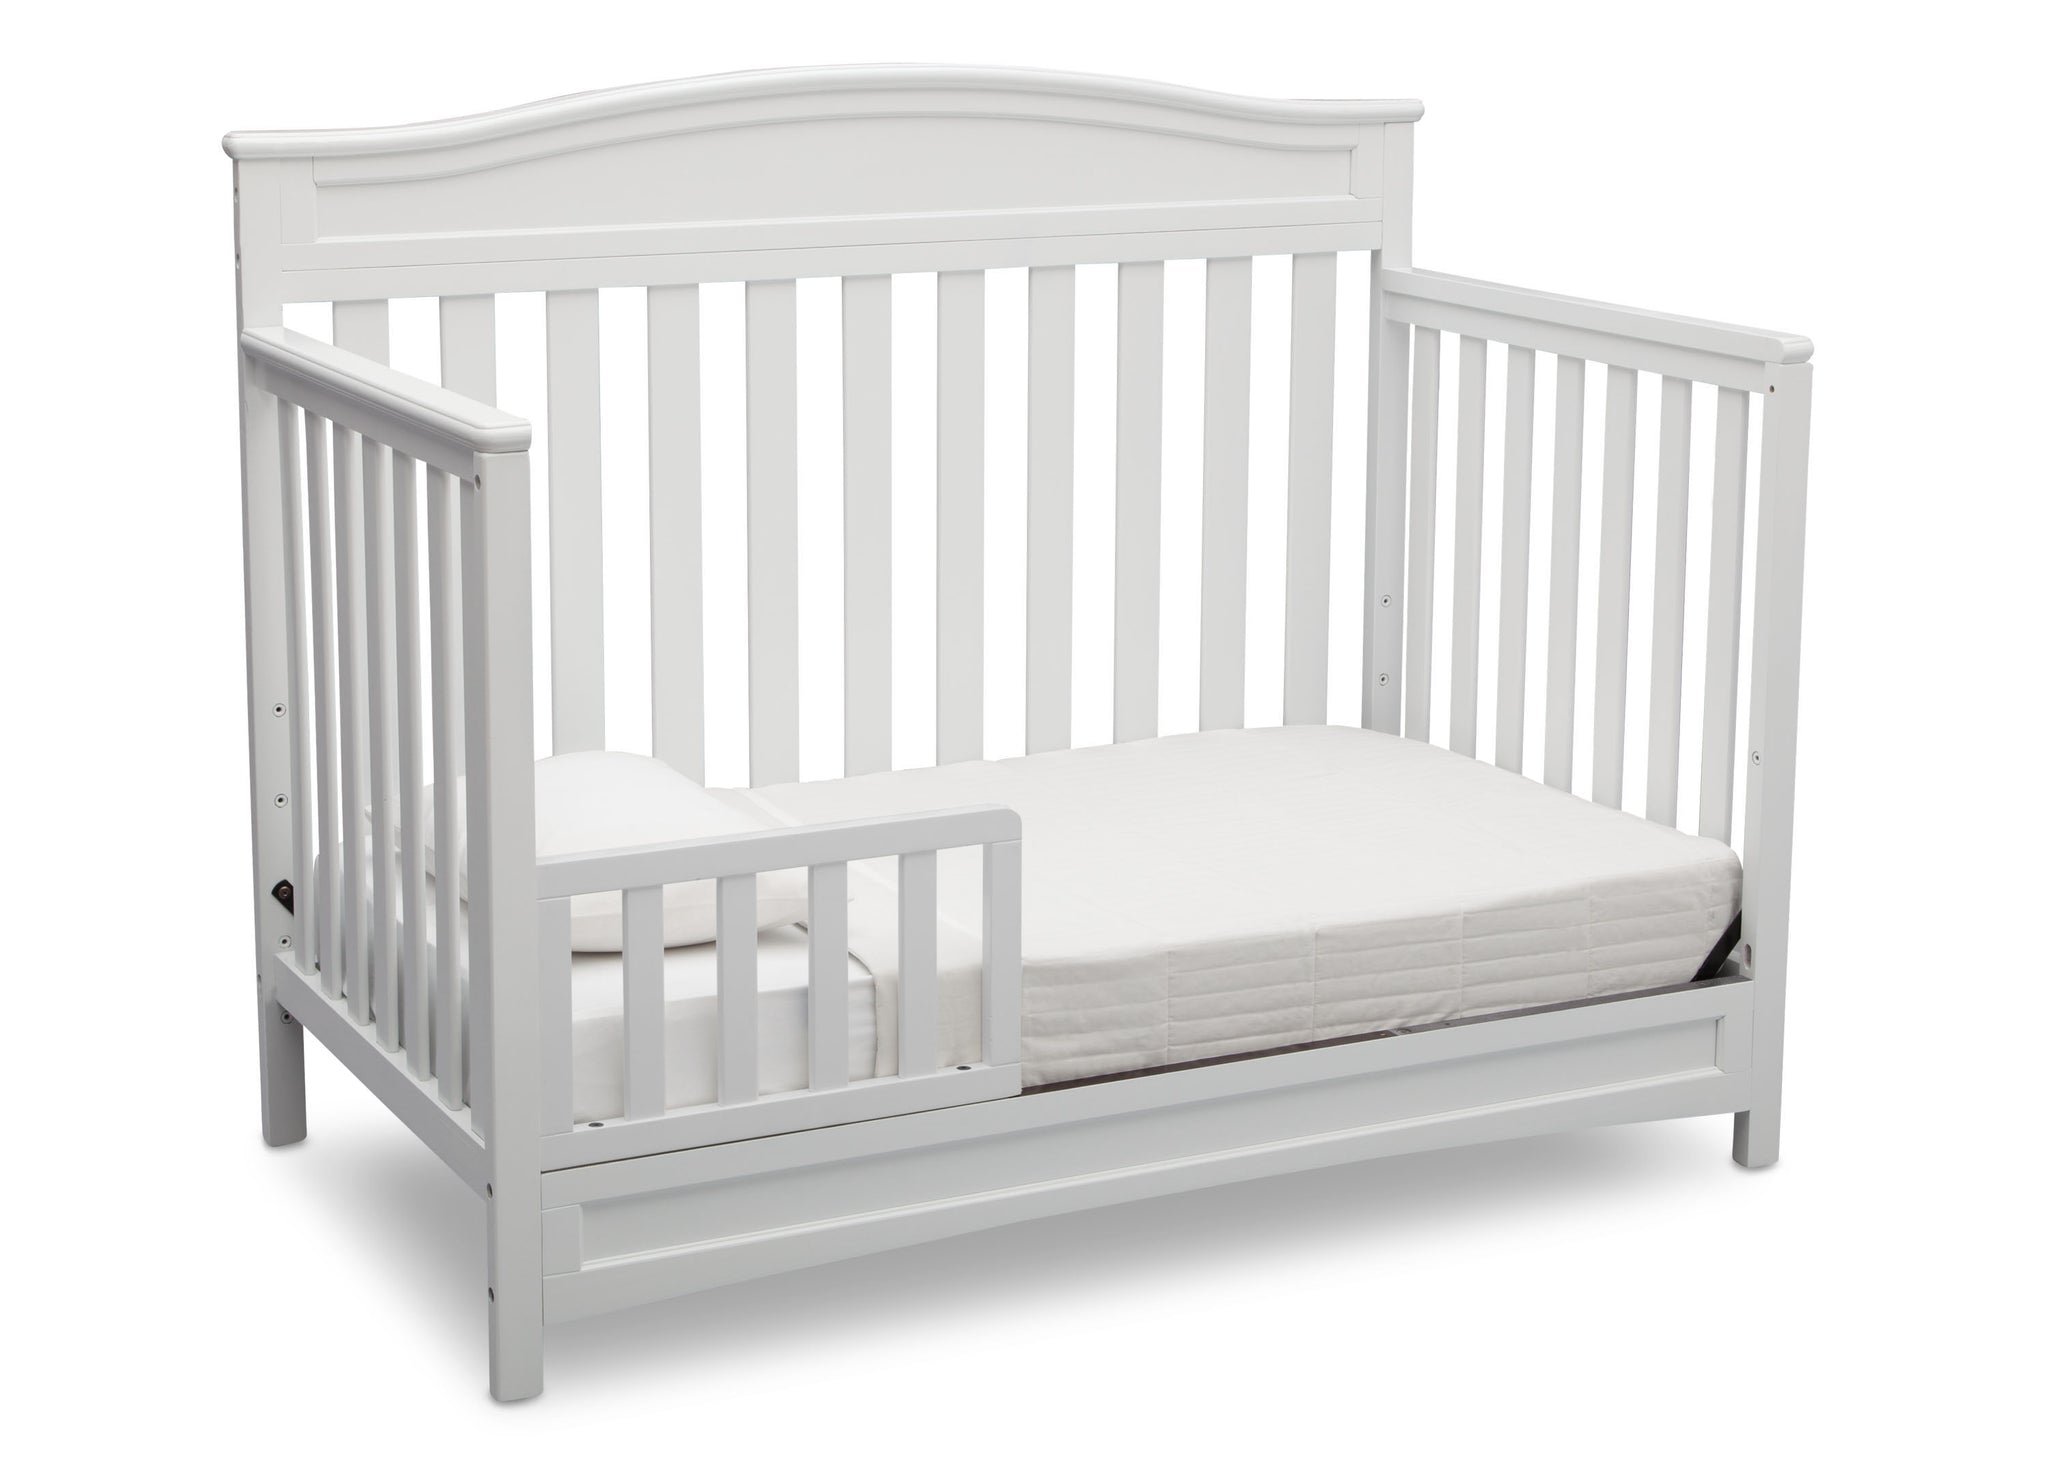 Delta Children White (100) Emery 4-in-1 Crib, Toddler Bed Conversion with Toddler Guardrail a4a